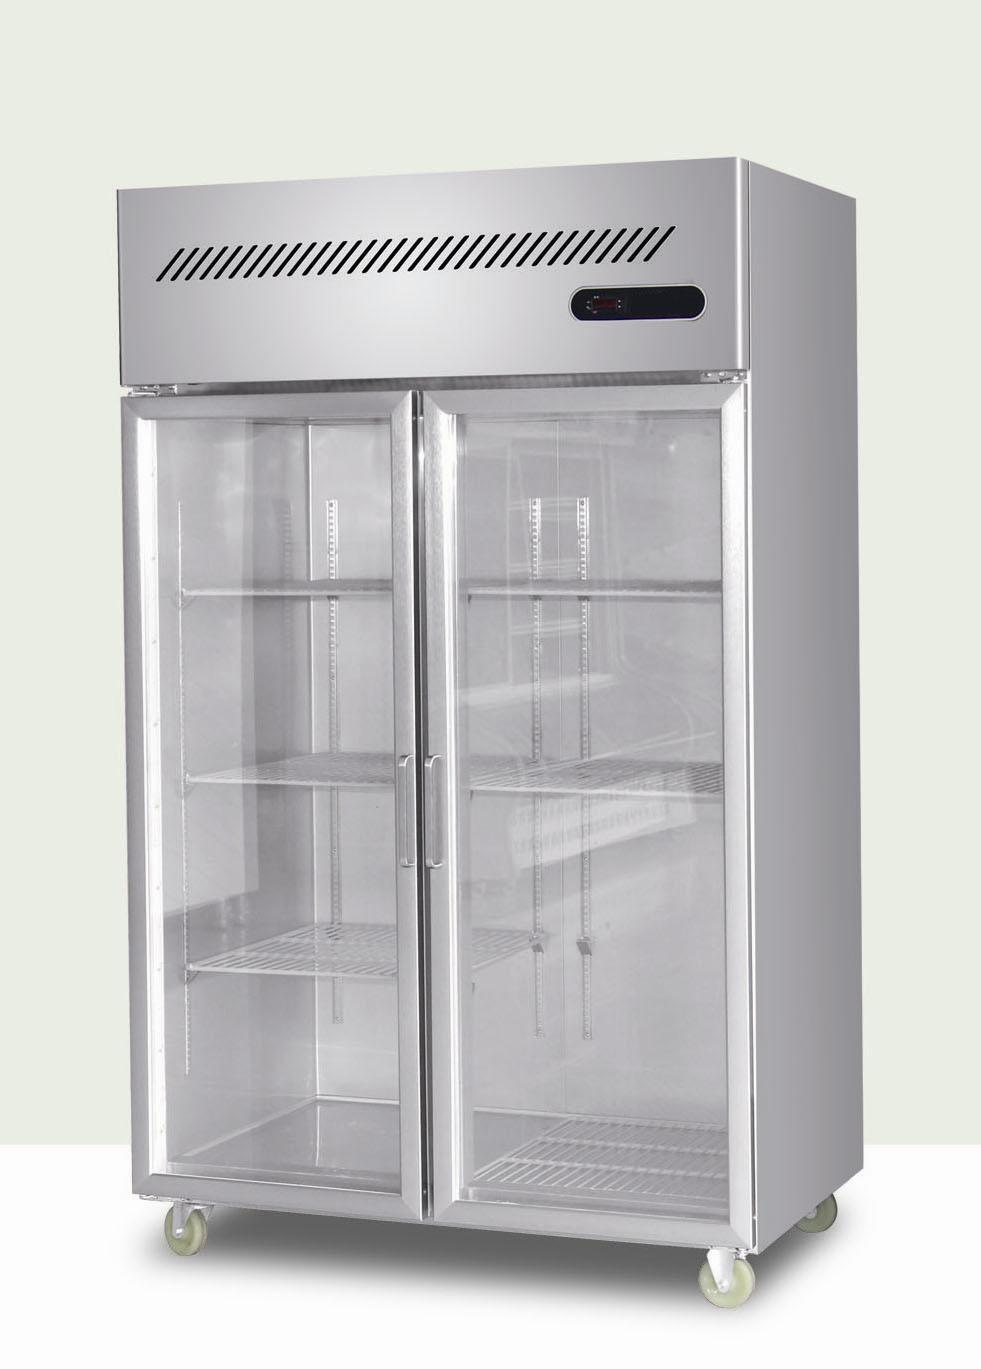 Glass door fridge kitchen - Restaurant Kitchen Refrigerator Stainless Steel Refrigerator Qingdao Reliance Refrigeration Equipment Throughout Decorating